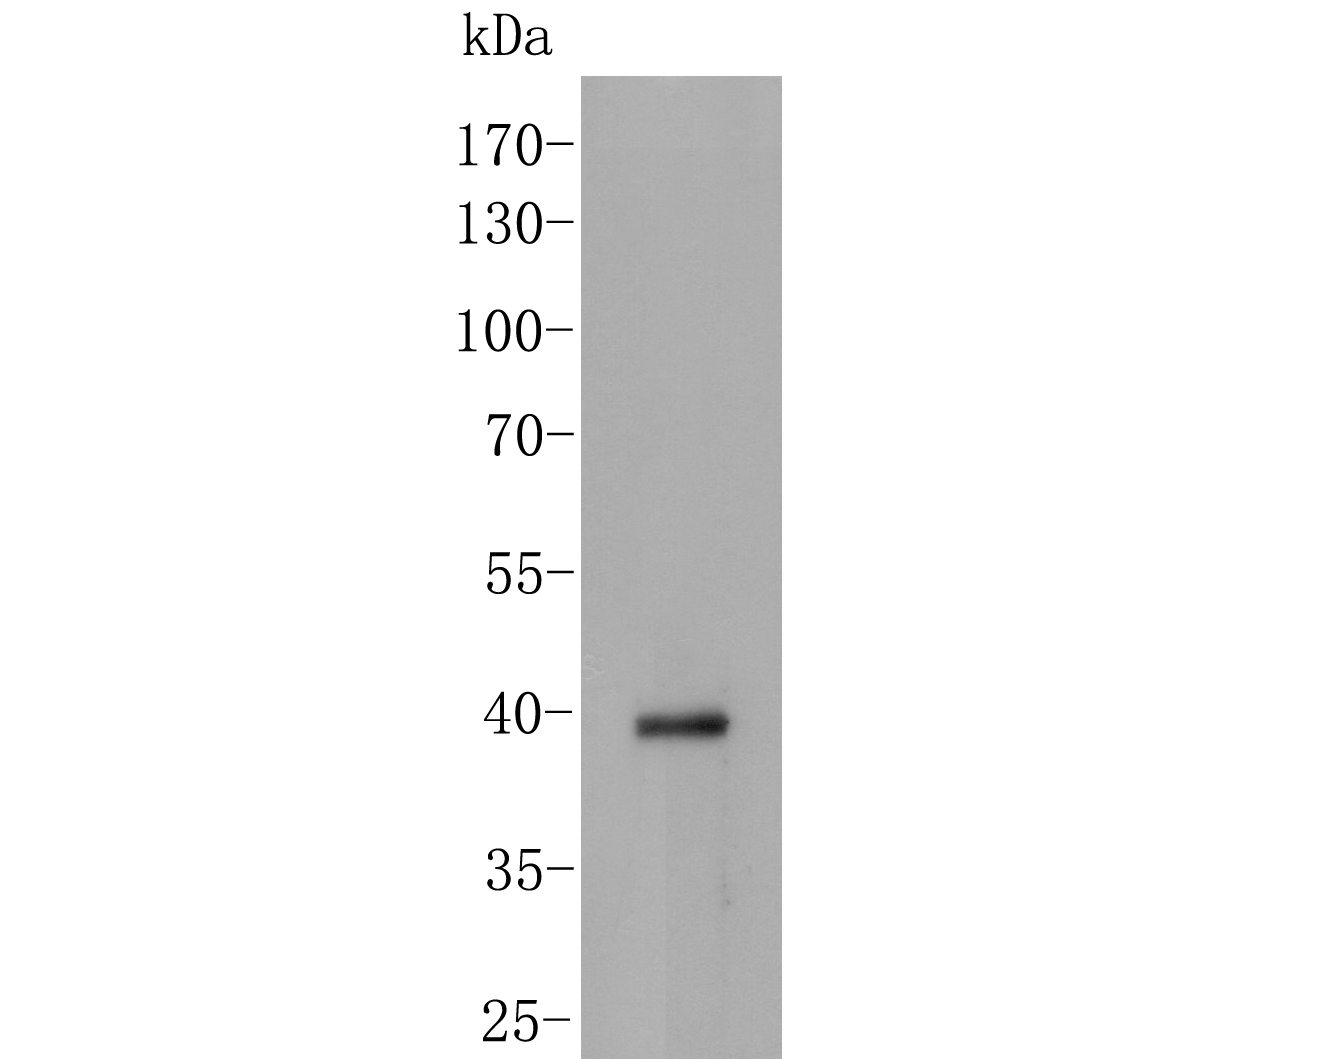 Western blot analysis of CD1a on rat skin tissue lysate lysates. Proteins were transferred to a PVDF membrane and blocked with 5% BSA in PBS for 1 hour at room temperature. The primary antibody (ER1902-73, 1/1,000) was used in 5% BSA at room temperature for 2 hours. Goat Anti-Rabbit IgG - HRP Secondary Antibody (HA1001) at 1:5,000 dilution was used for 1 hour at room temperature.